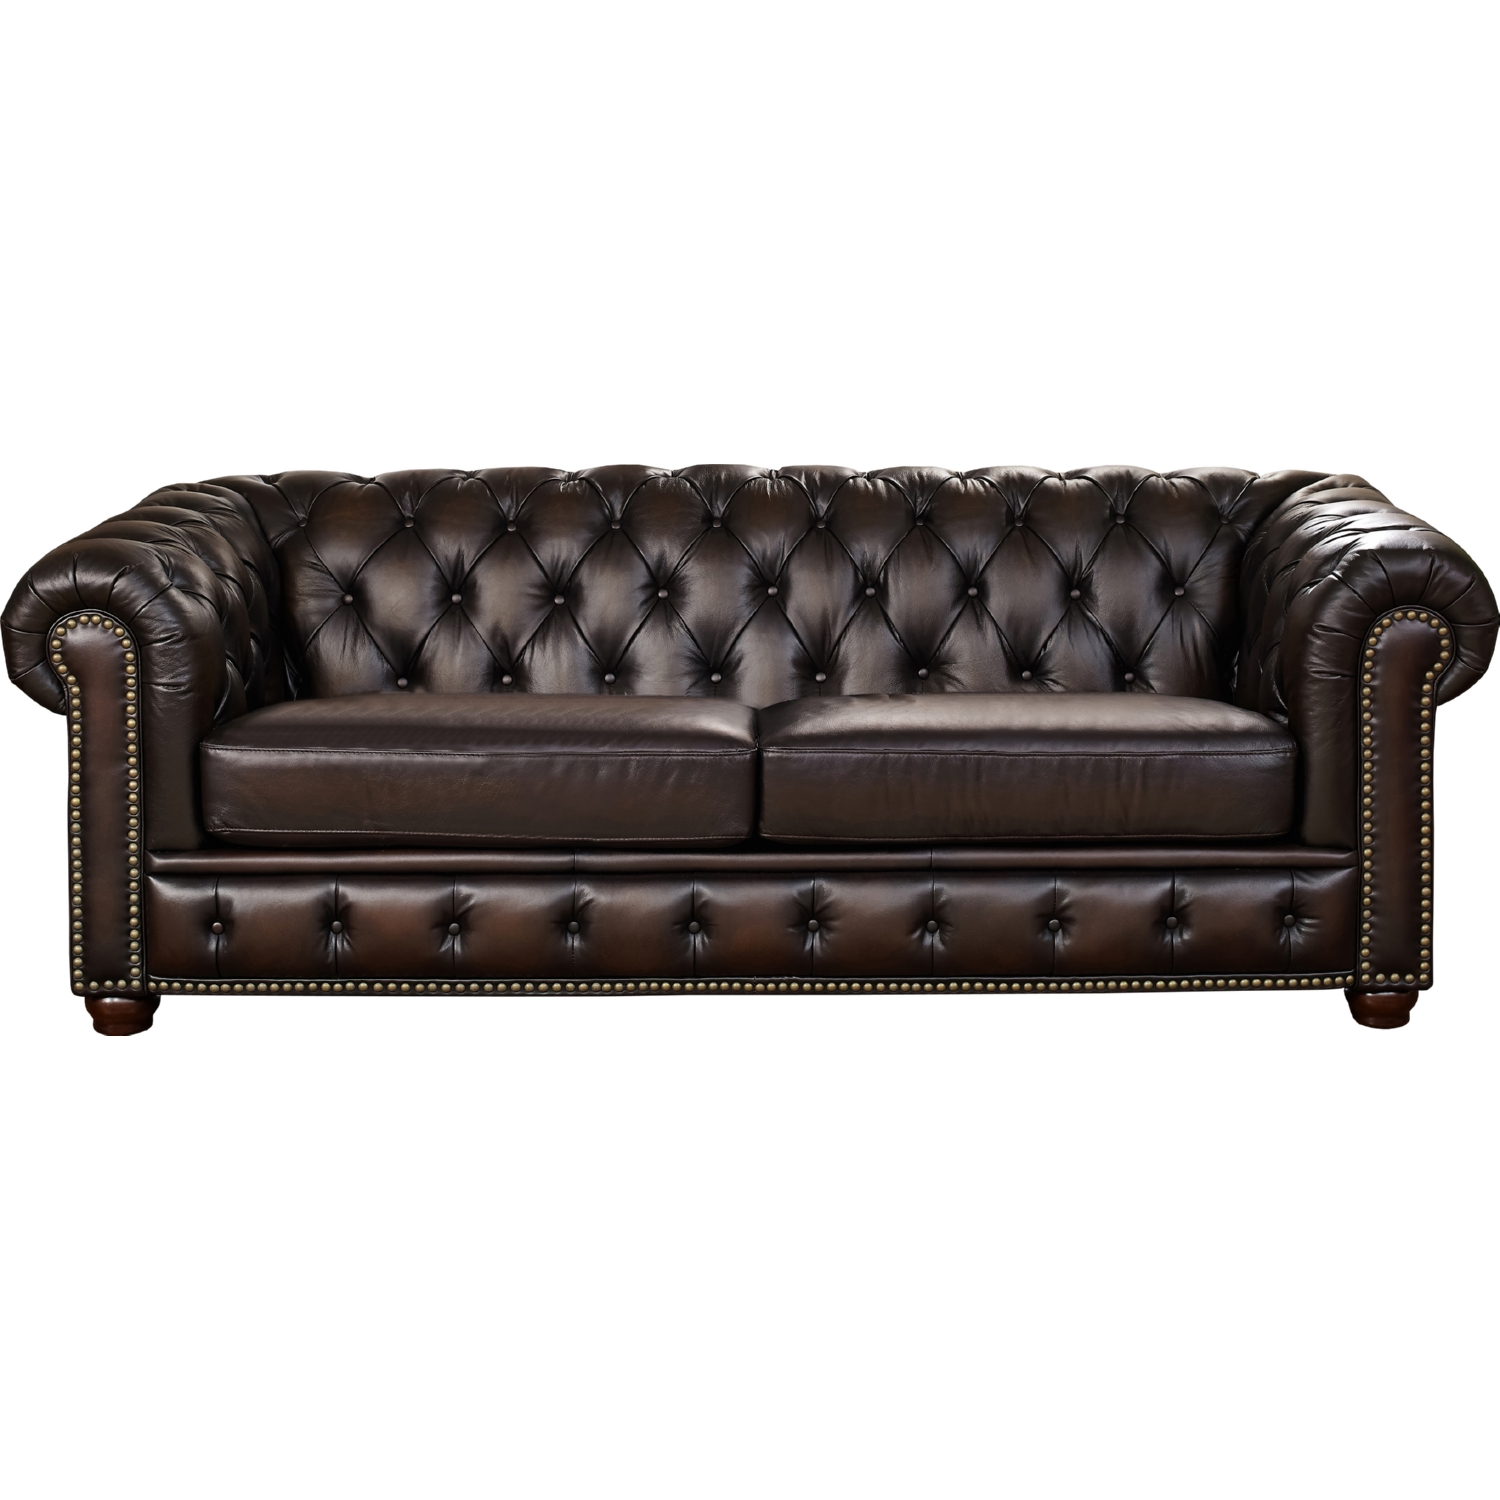 albany leather sofa get rid of old dublin amax s 100 in brown w diamond tufting nailheads by